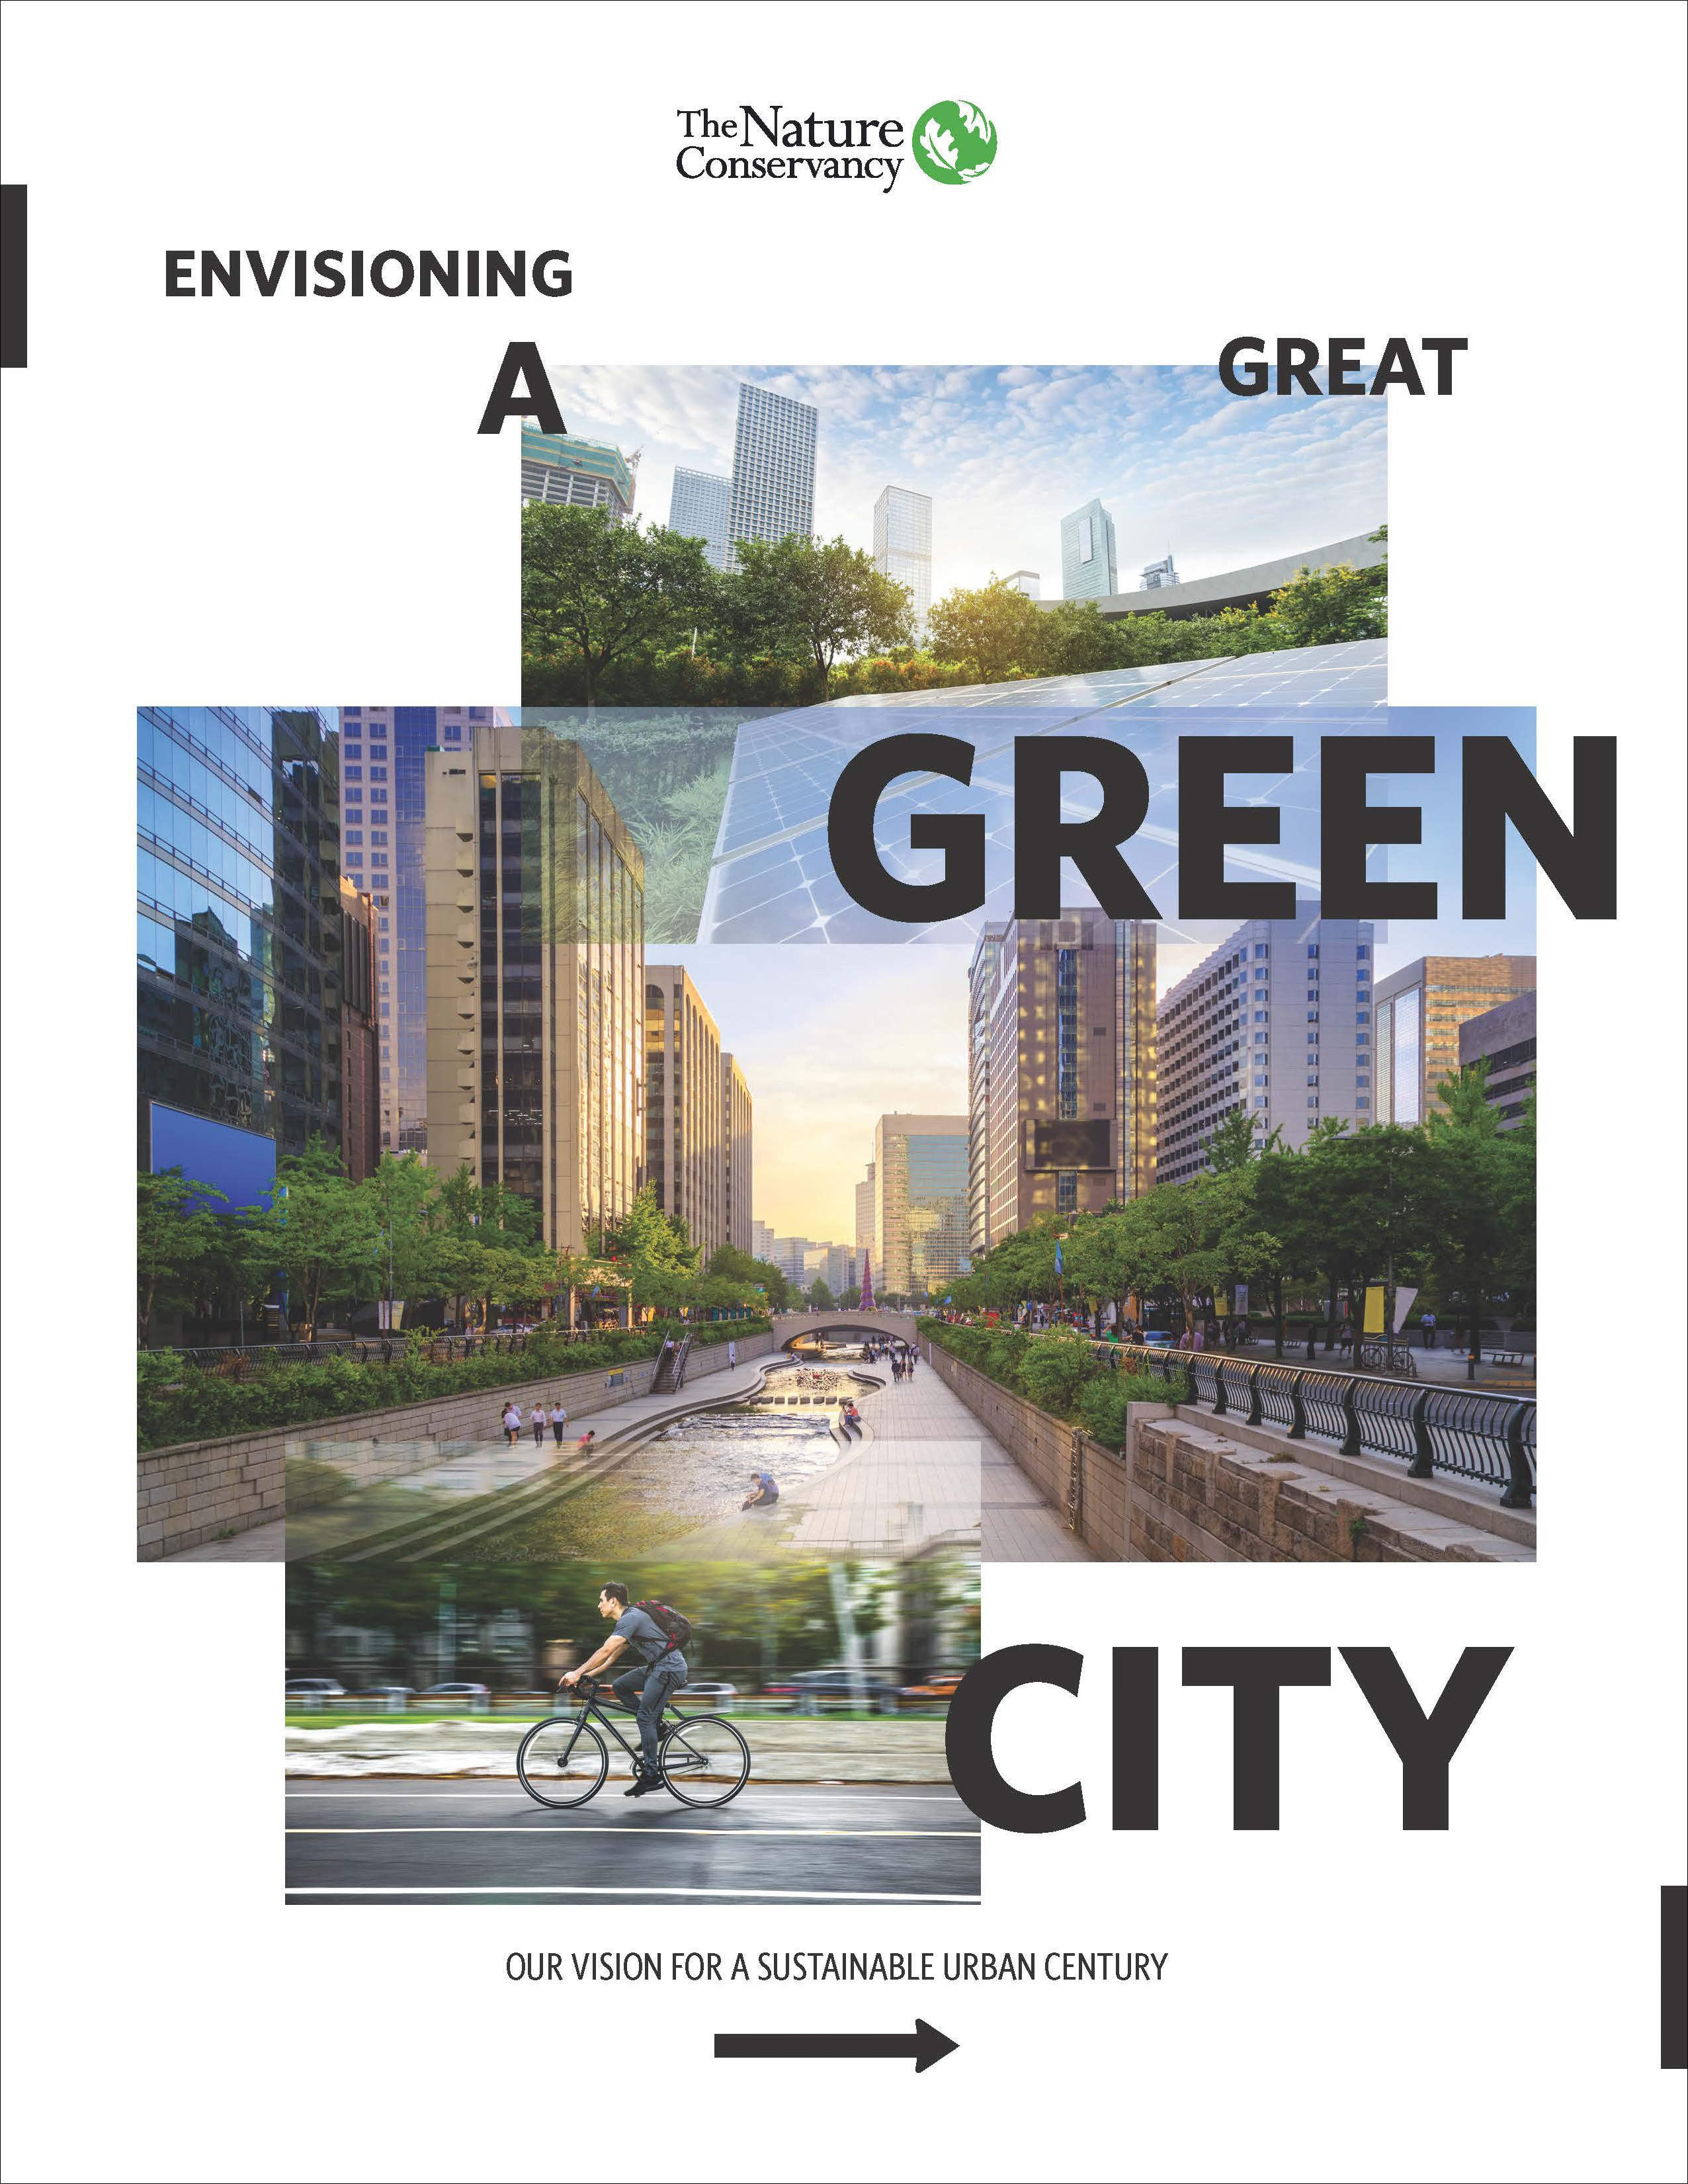 Envisioning a Great Green City